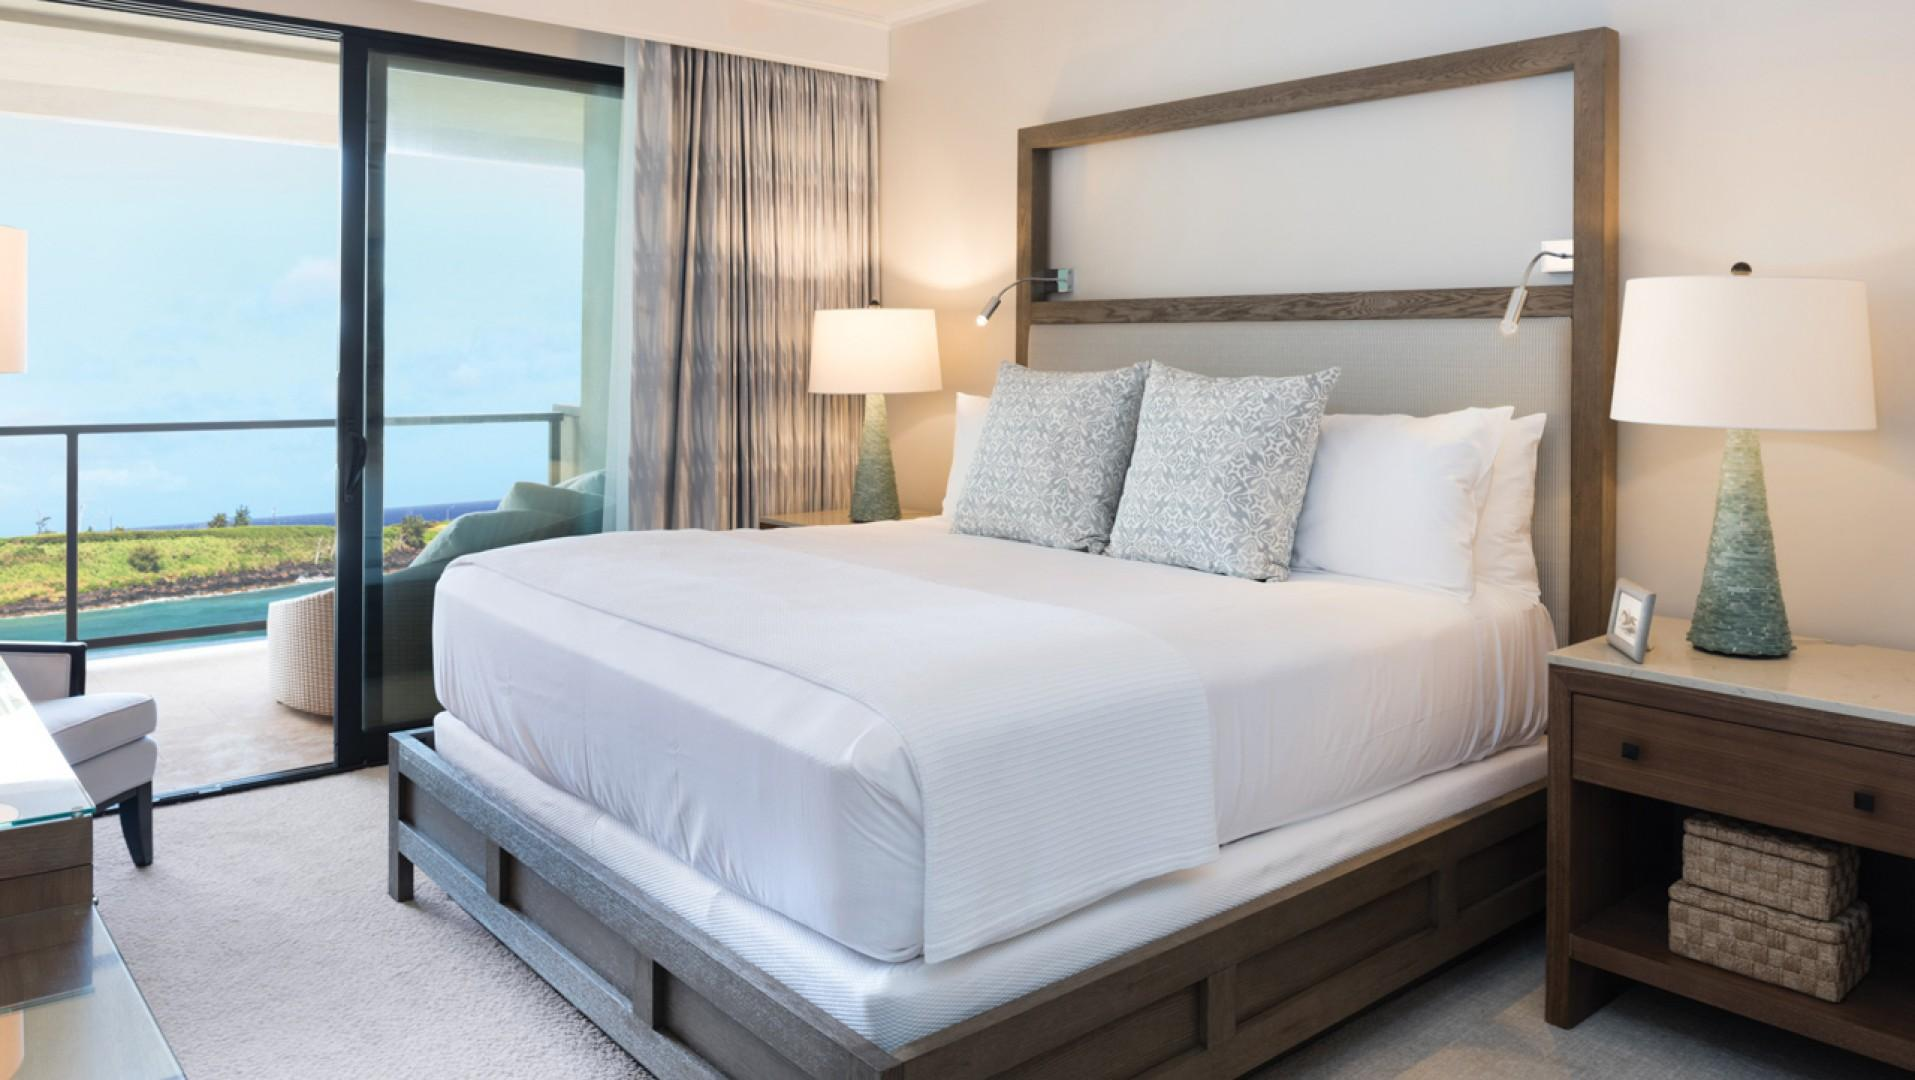 Spacious, luxurious bedrooms also feature stunning ocean views.